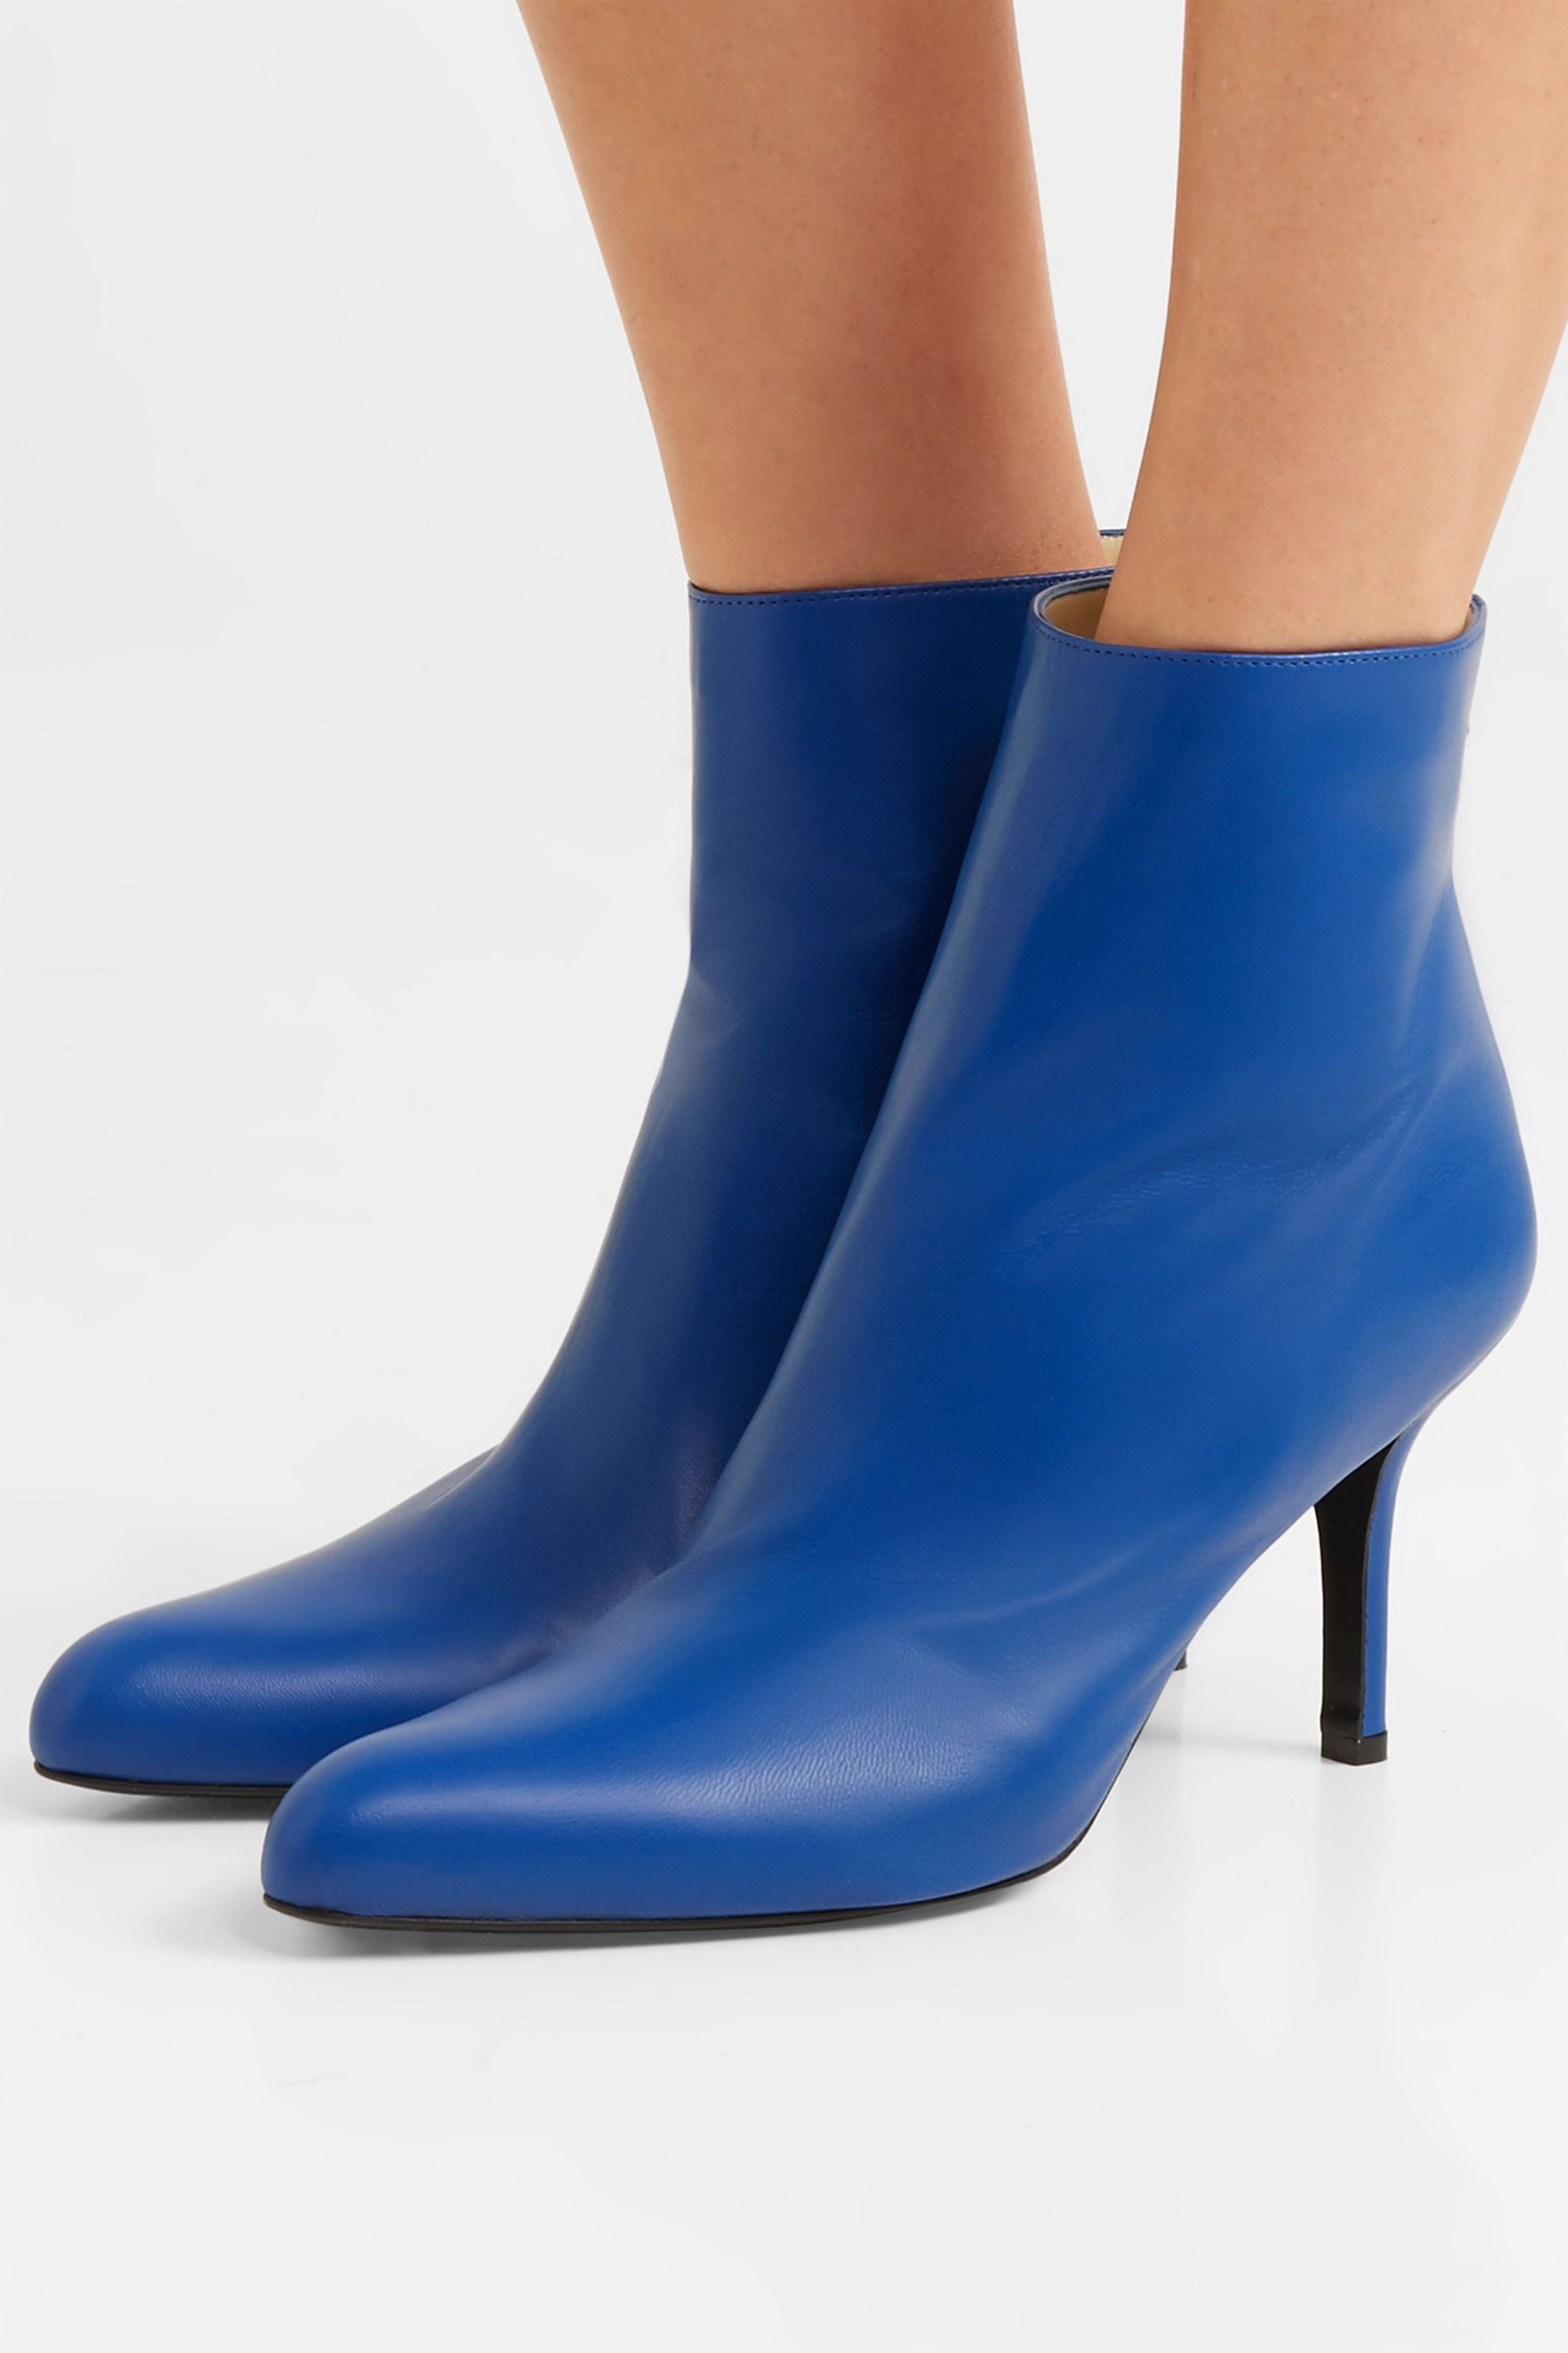 Cobalt blue Leather ankle boots | Marni